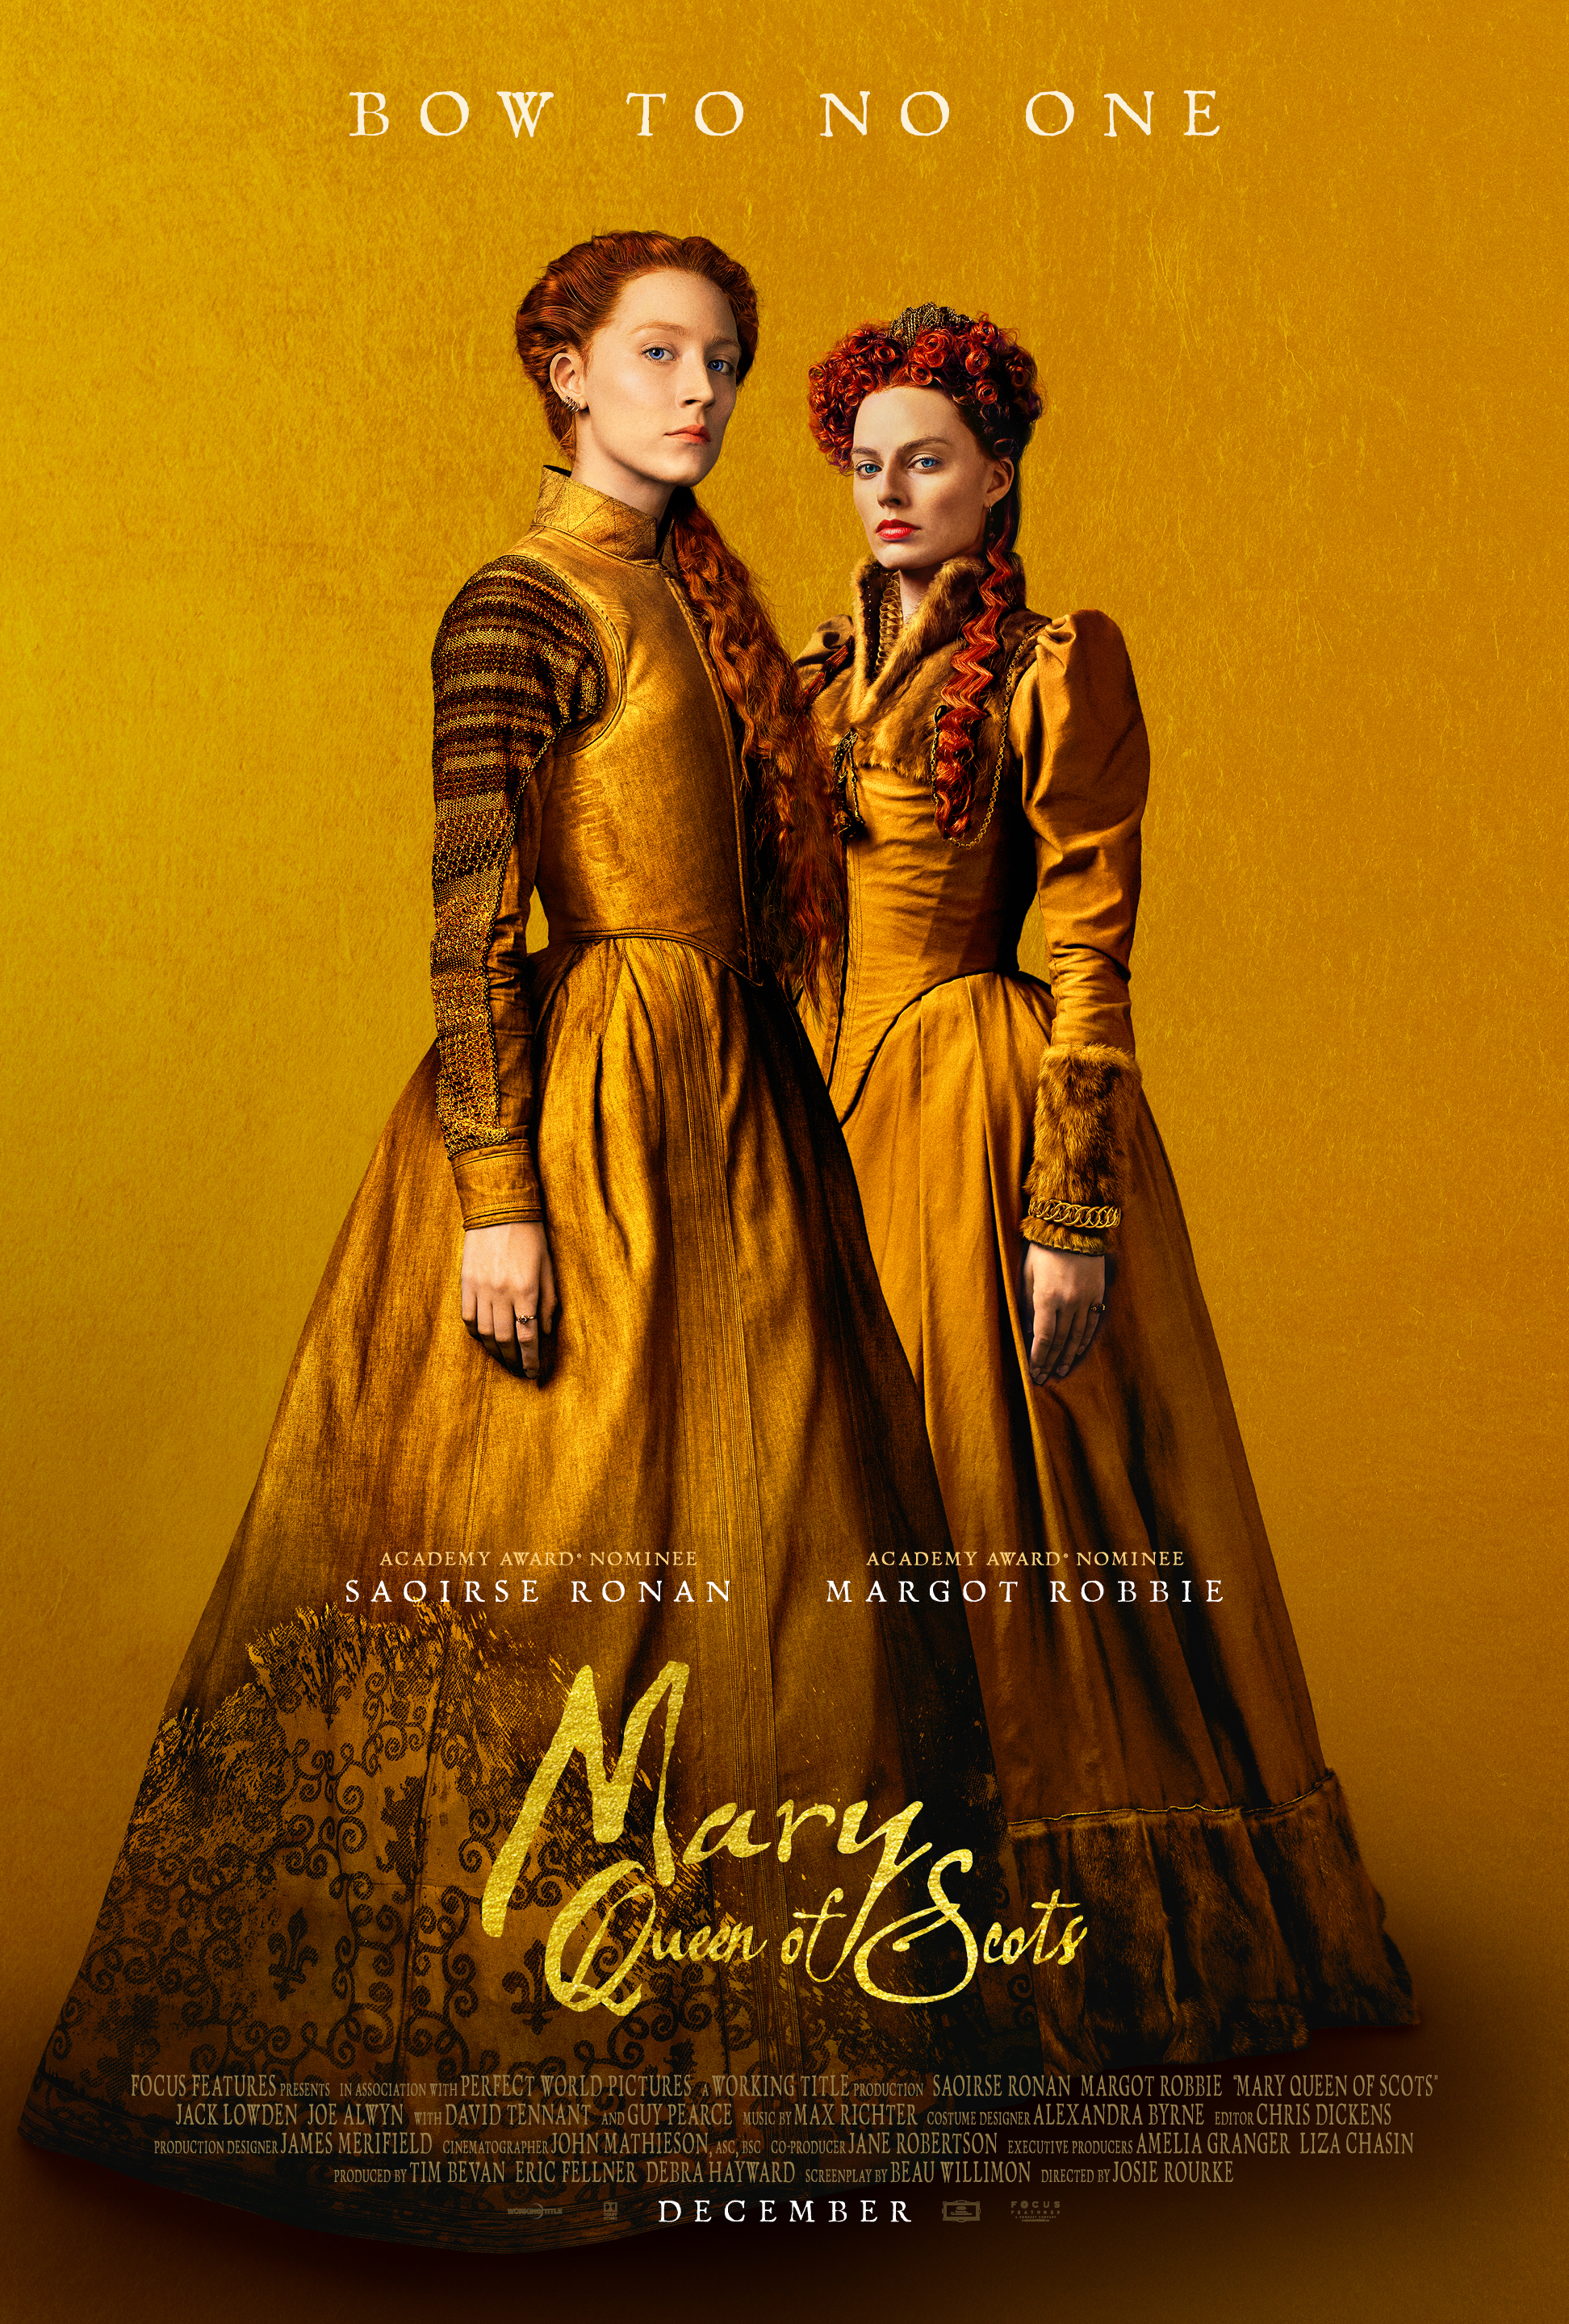 Mary Queen of Scots (2018) - Directed by: Josie RourkeStarring: Saoirse Ronan, Margot Robbie, Jack Lowden, Guy PearceRated: R for Some Violence and SexualityRunning Time: 2 h 4 mTMM Score: 2 stars out of 5STRENGTHS: Acting, CostumesWEAKNESSES: Pacing, Writing, Directing, Out of Place Themes